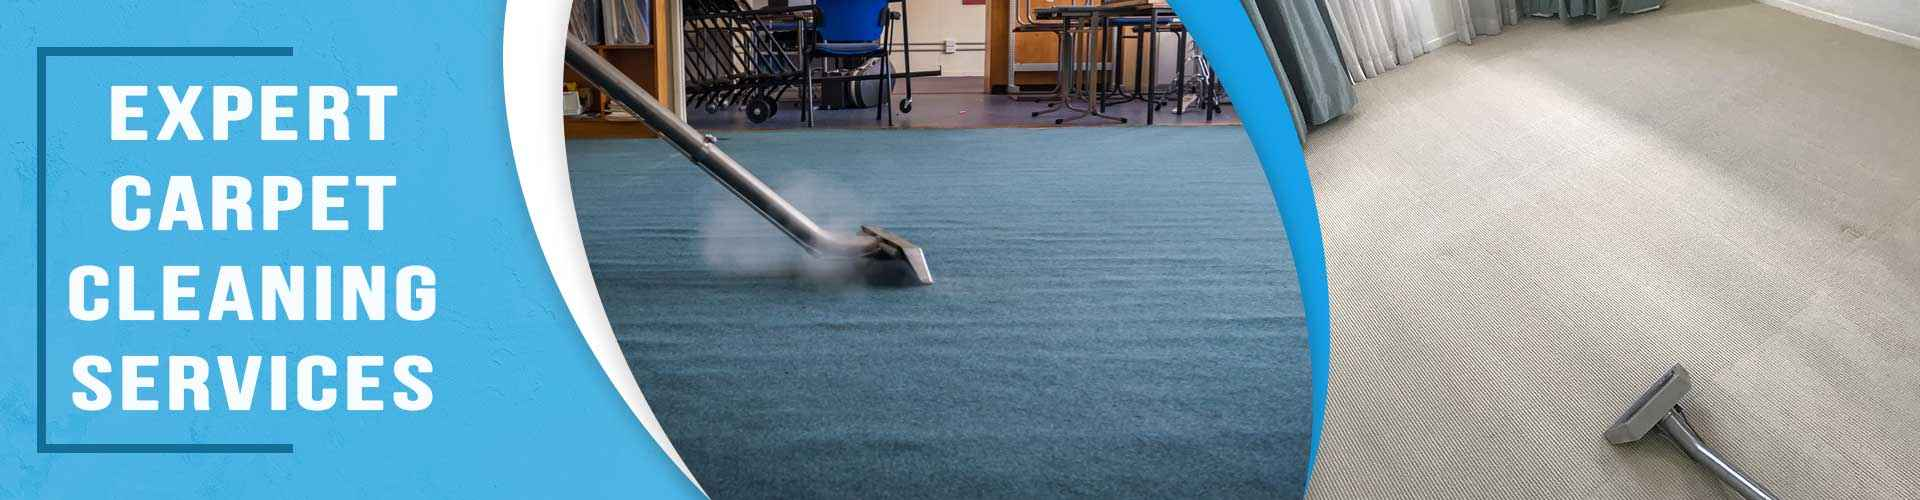 Curtain Cleaning Sydney Carpet Cleaning Sydney 1300 095 443 1 Carpet Cleaners In Sydney